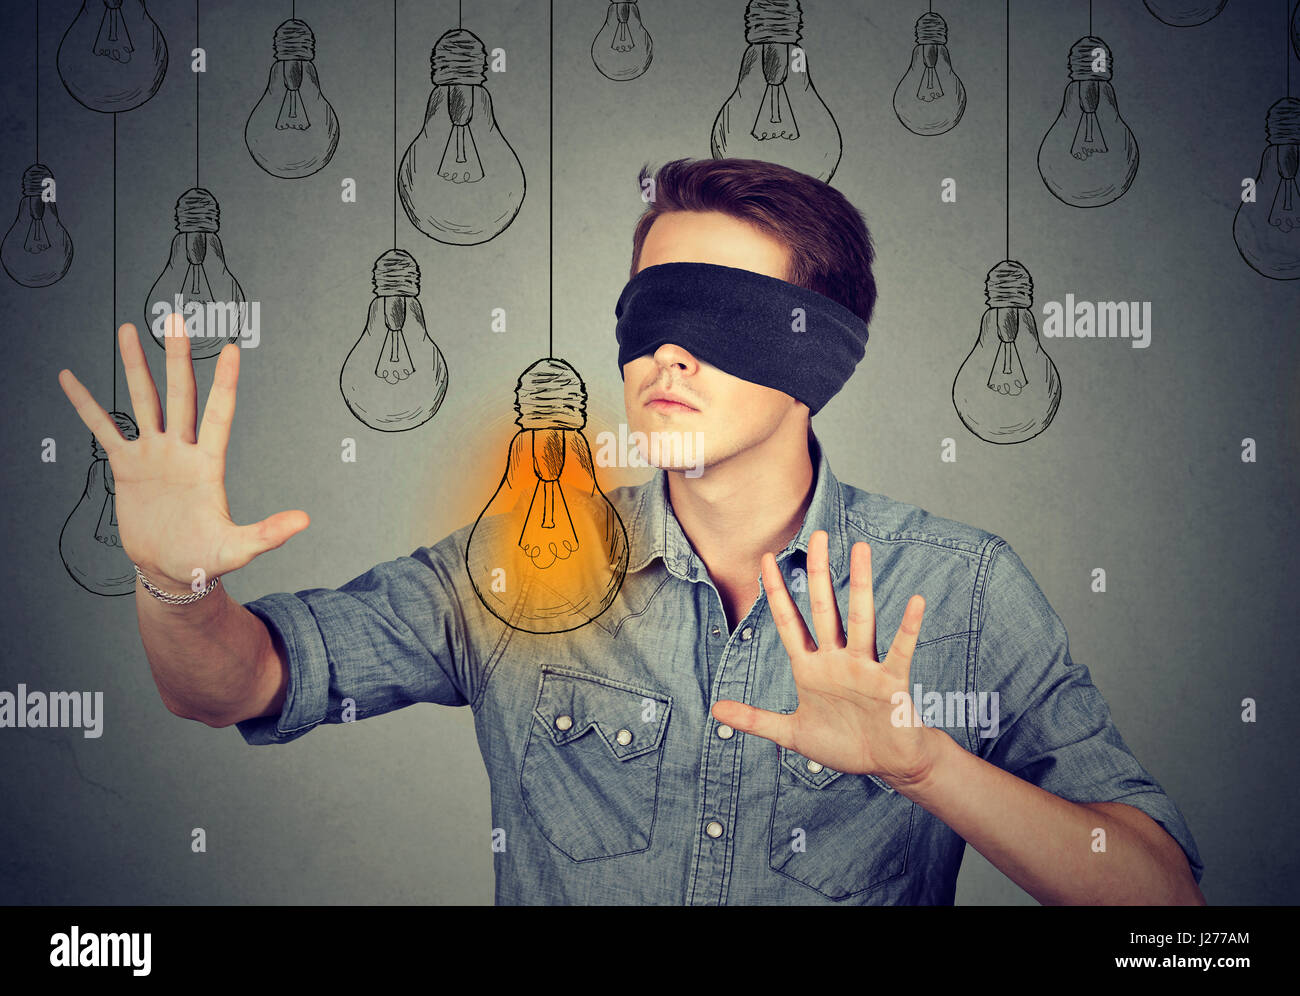 Blindfolded young man walking through light bulbs searching for bright idea - Stock Image